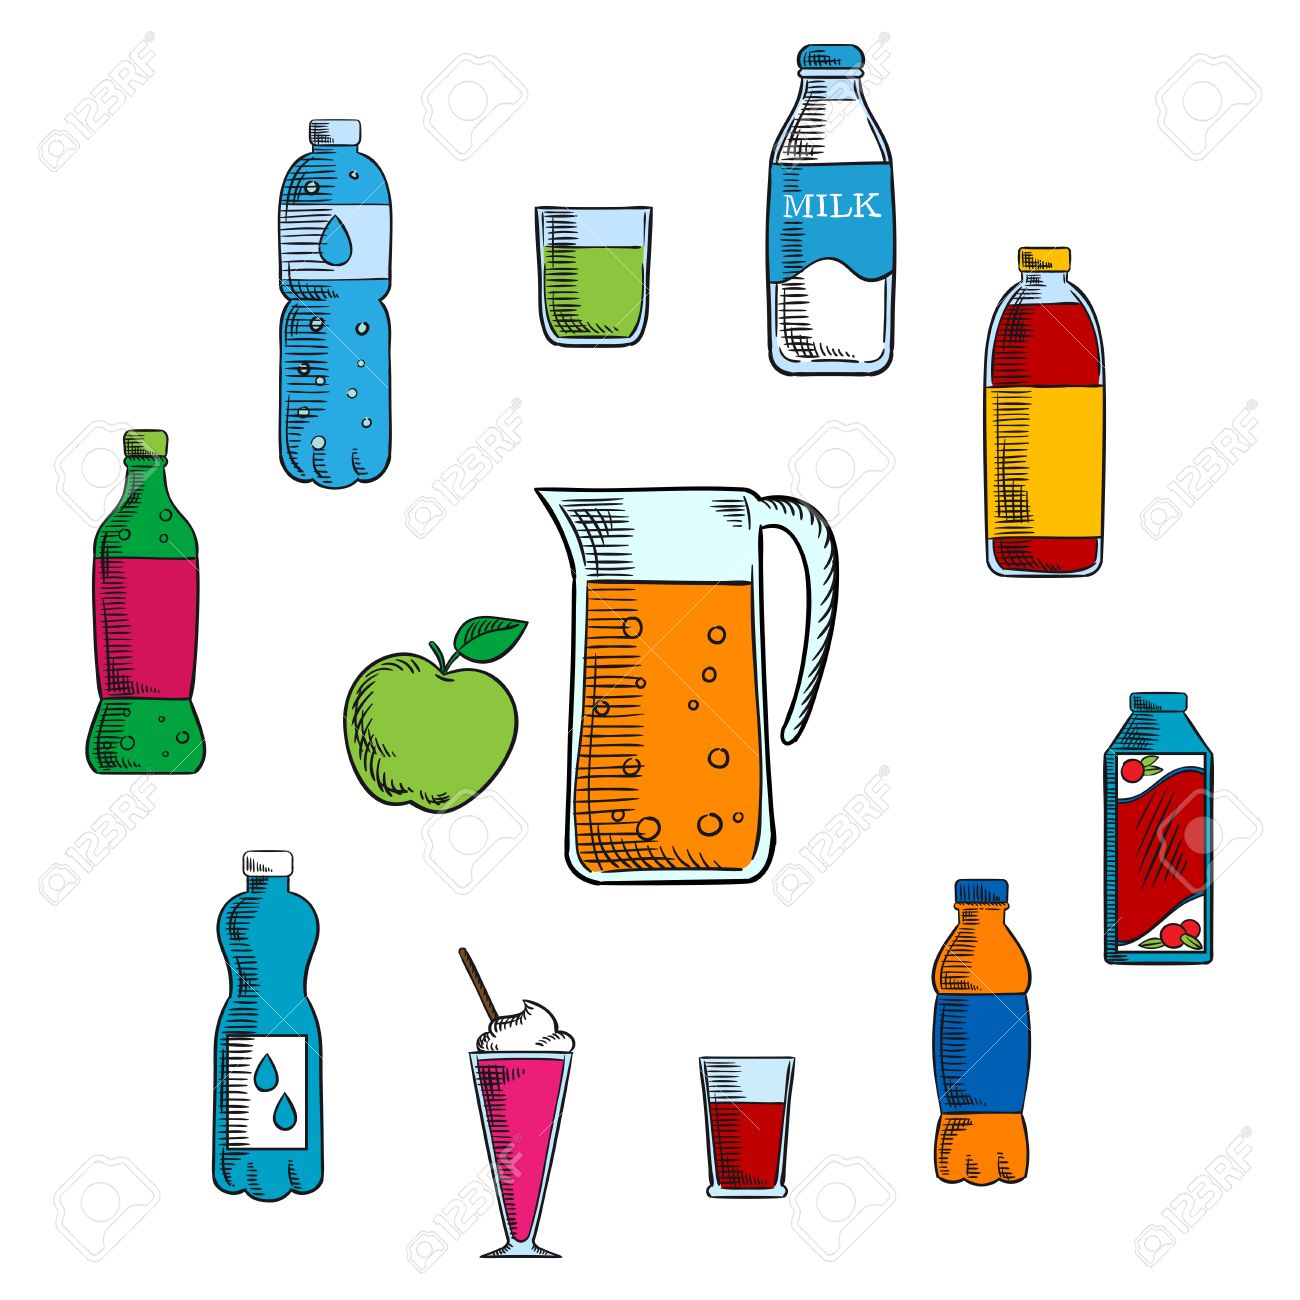 Non Alcoholic Beverages And Drinks With Pitcher And Fresh Apple Royalty Free Cliparts Vectors And Stock Illustration Image 52089337